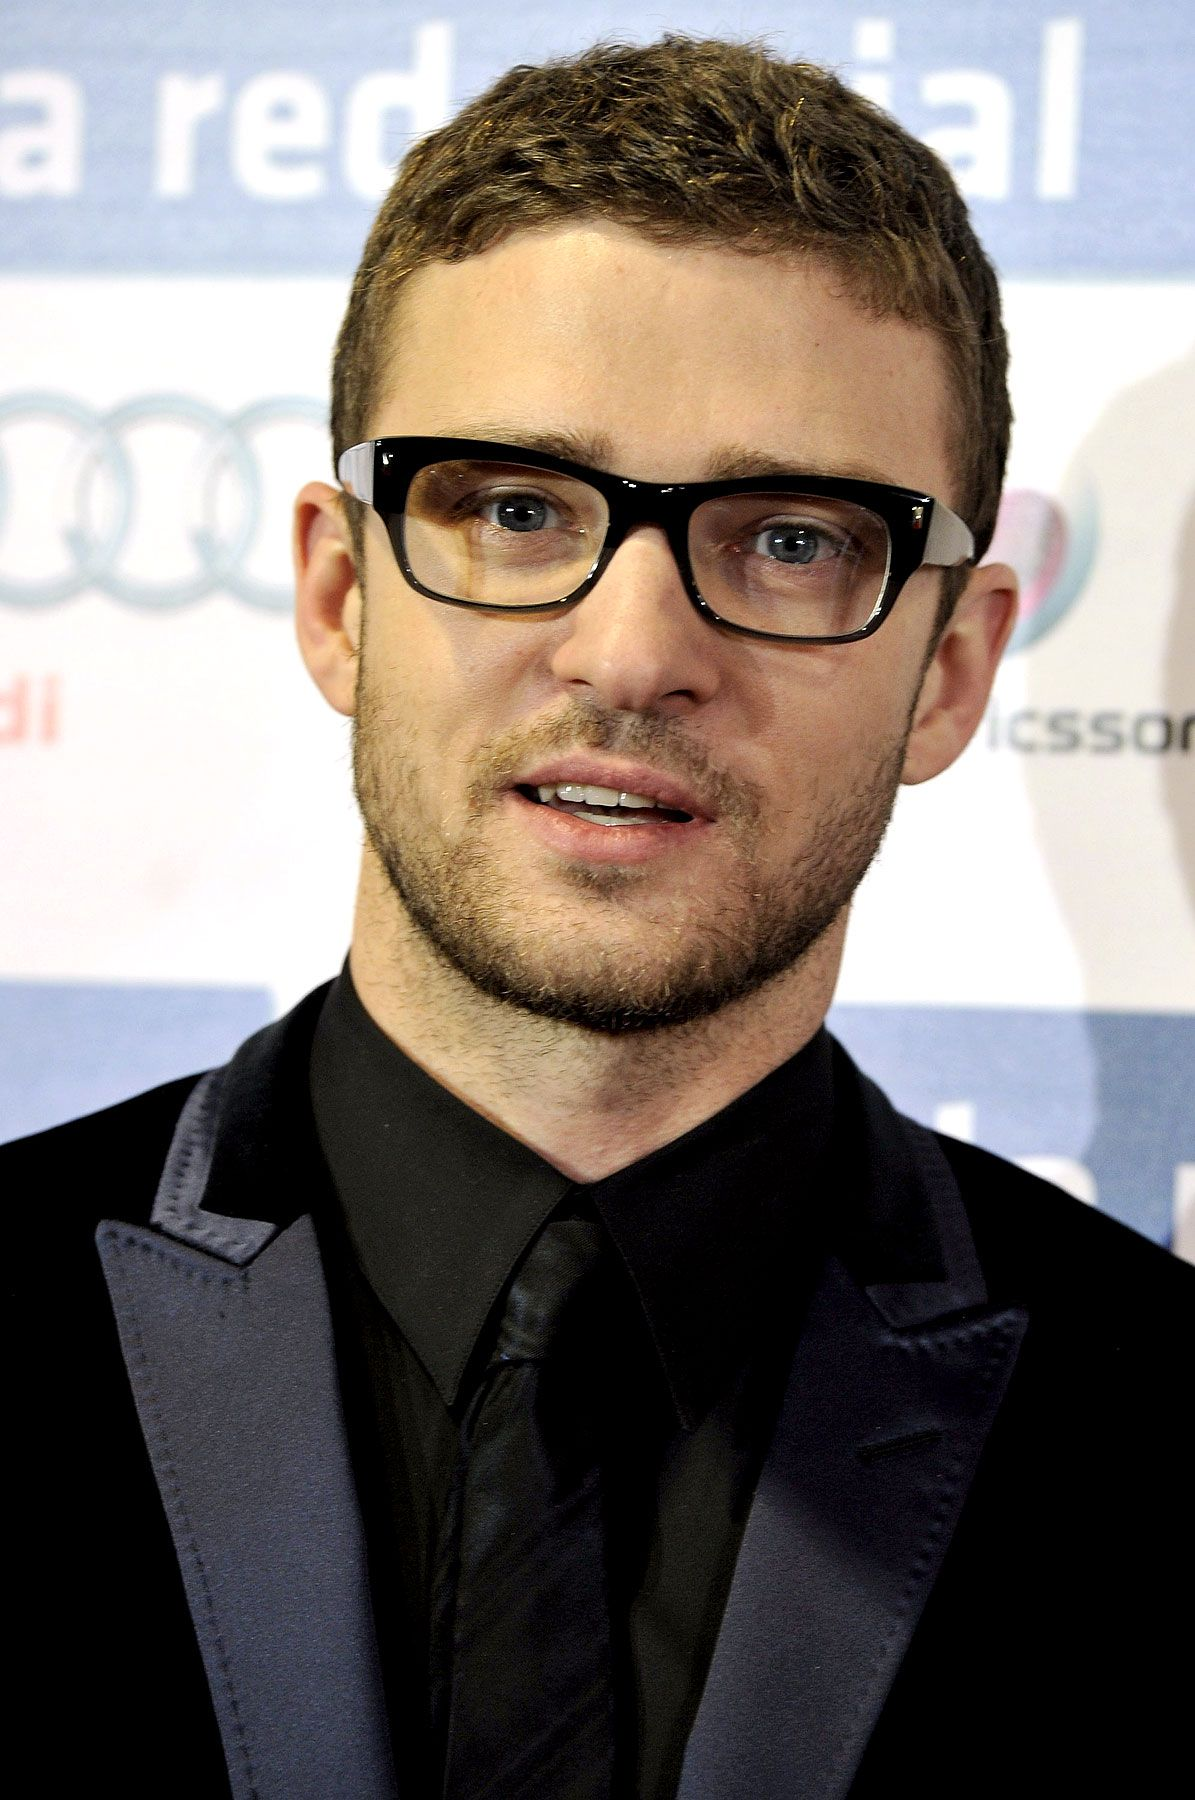 8ec9820a43e Davis Vision - Justin Timberlake looks handsome in super-thick black specs.